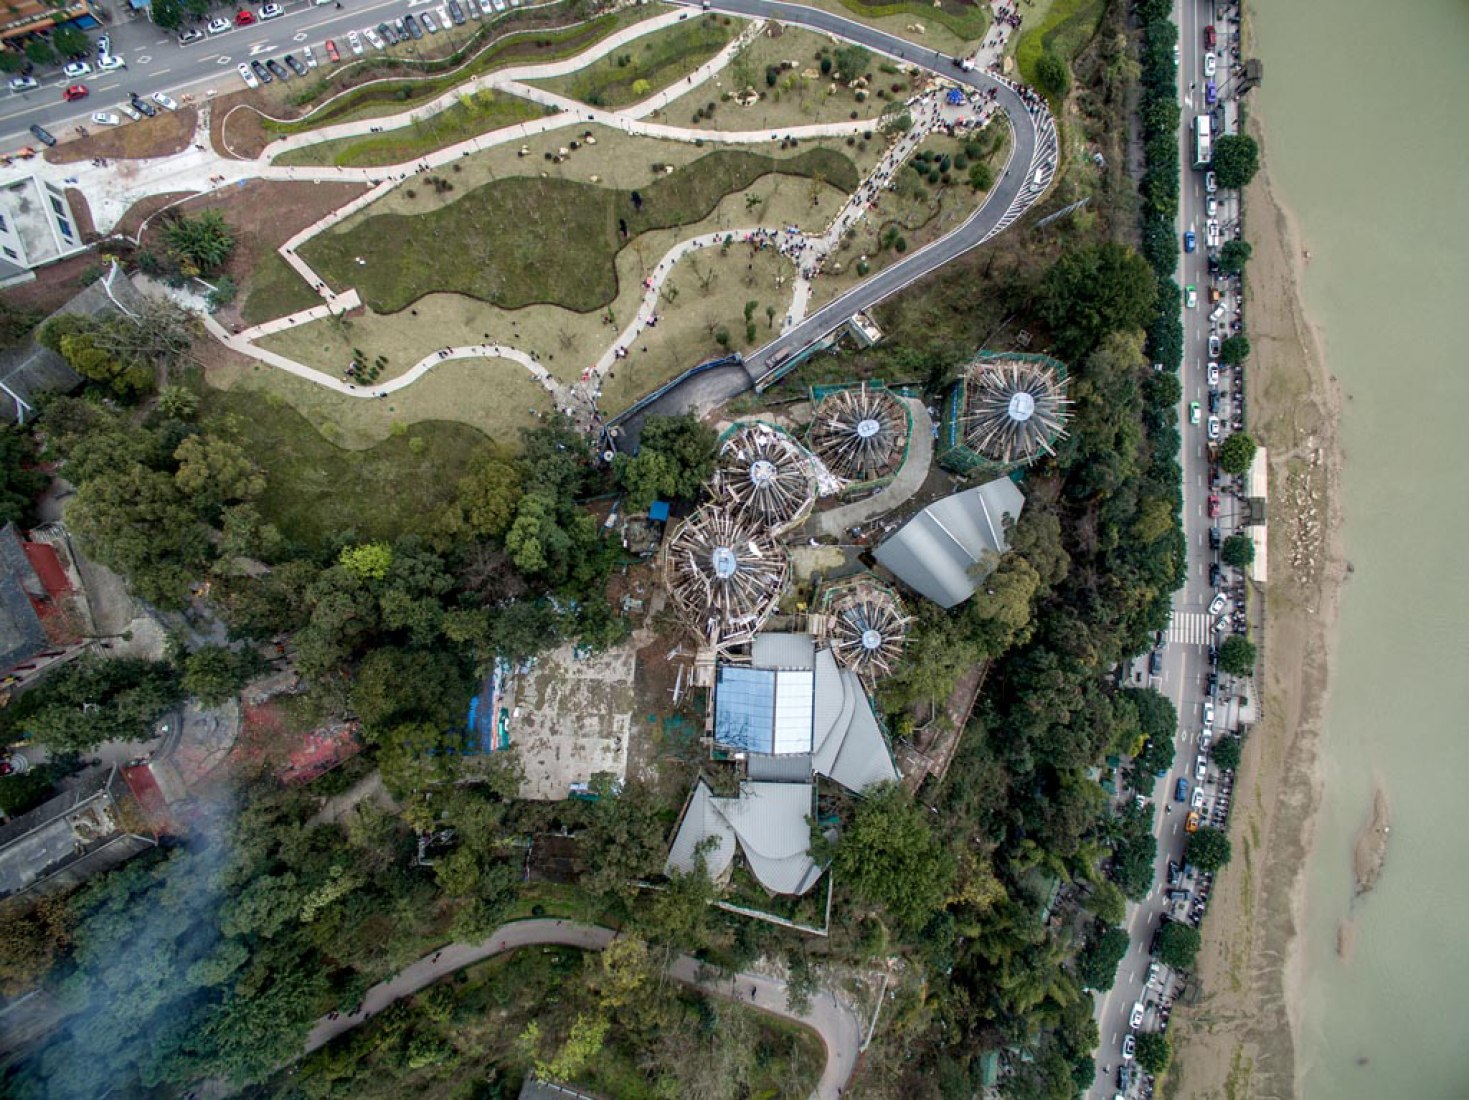 Construction phase. Zhang Daqian Museum, designed by Benedetta Tagliabue / EMBT. Image courtesy of EMBT.